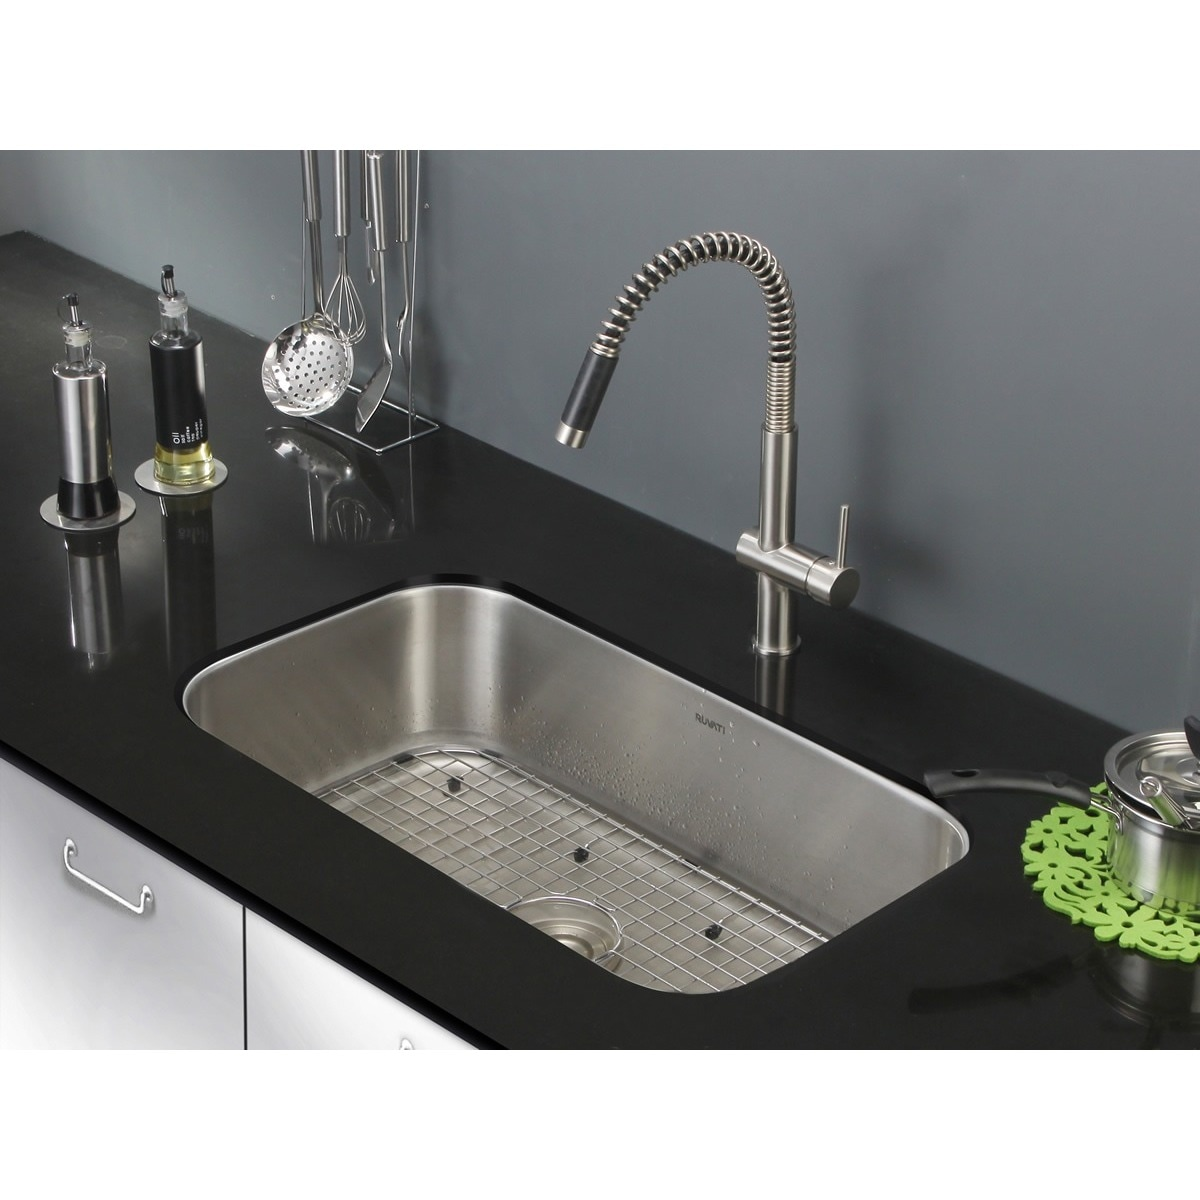 Undermount Kitchen Sink With Drainer Ruvati 32 inch undermount 16 gauge stainless steel kitchen sink ruvati 32 inch undermount 16 gauge stainless steel kitchen sink single bowl rvm4200 free shipping today overstock 14534056 workwithnaturefo